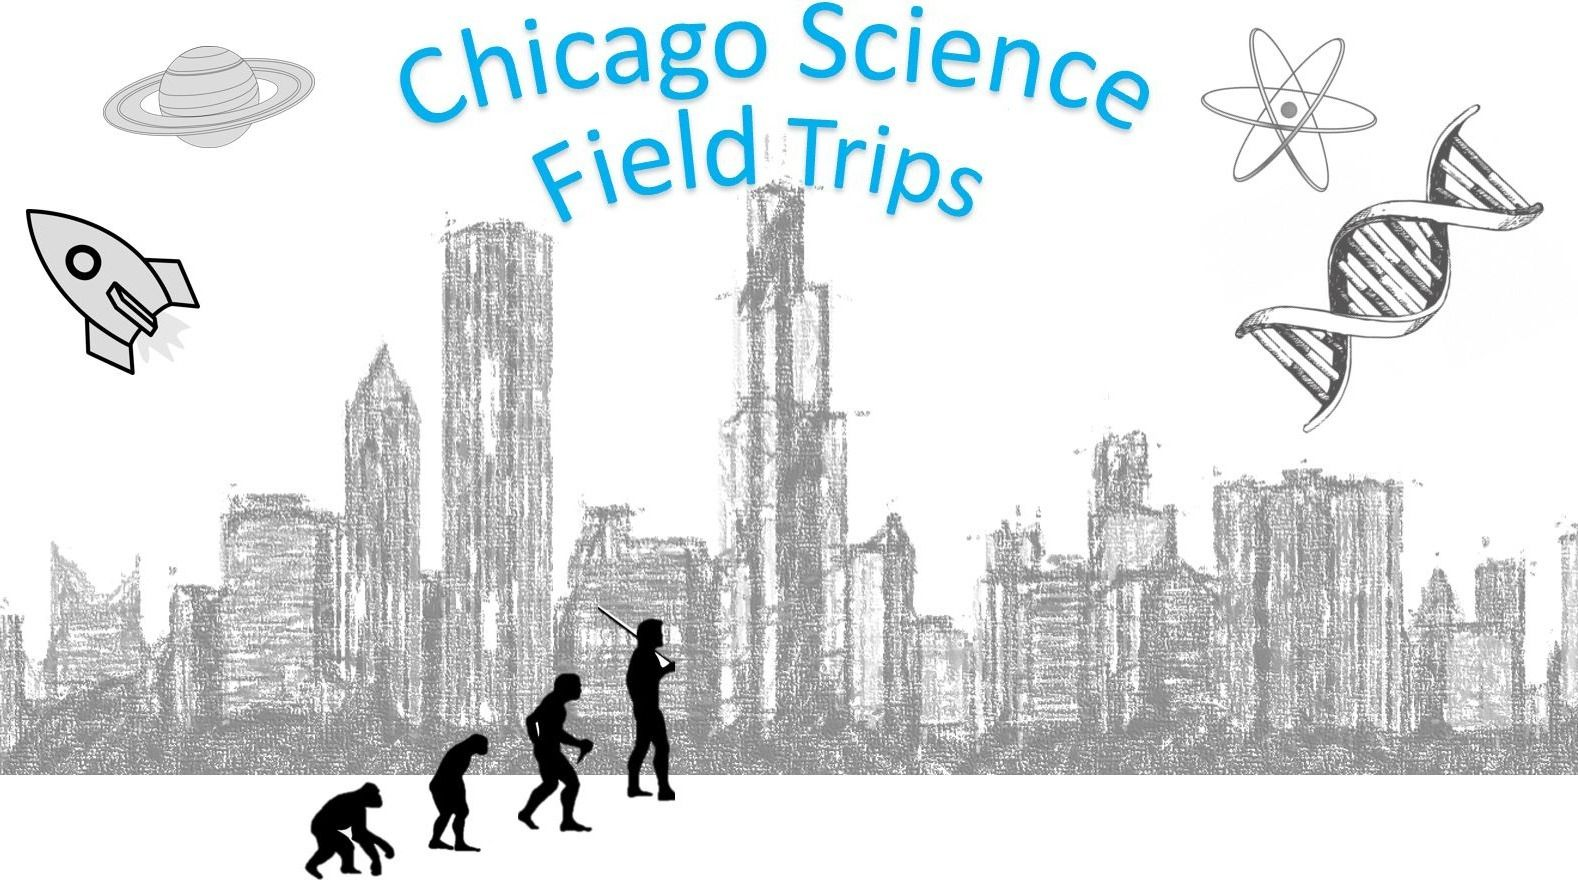 Chicago Science Field Trips